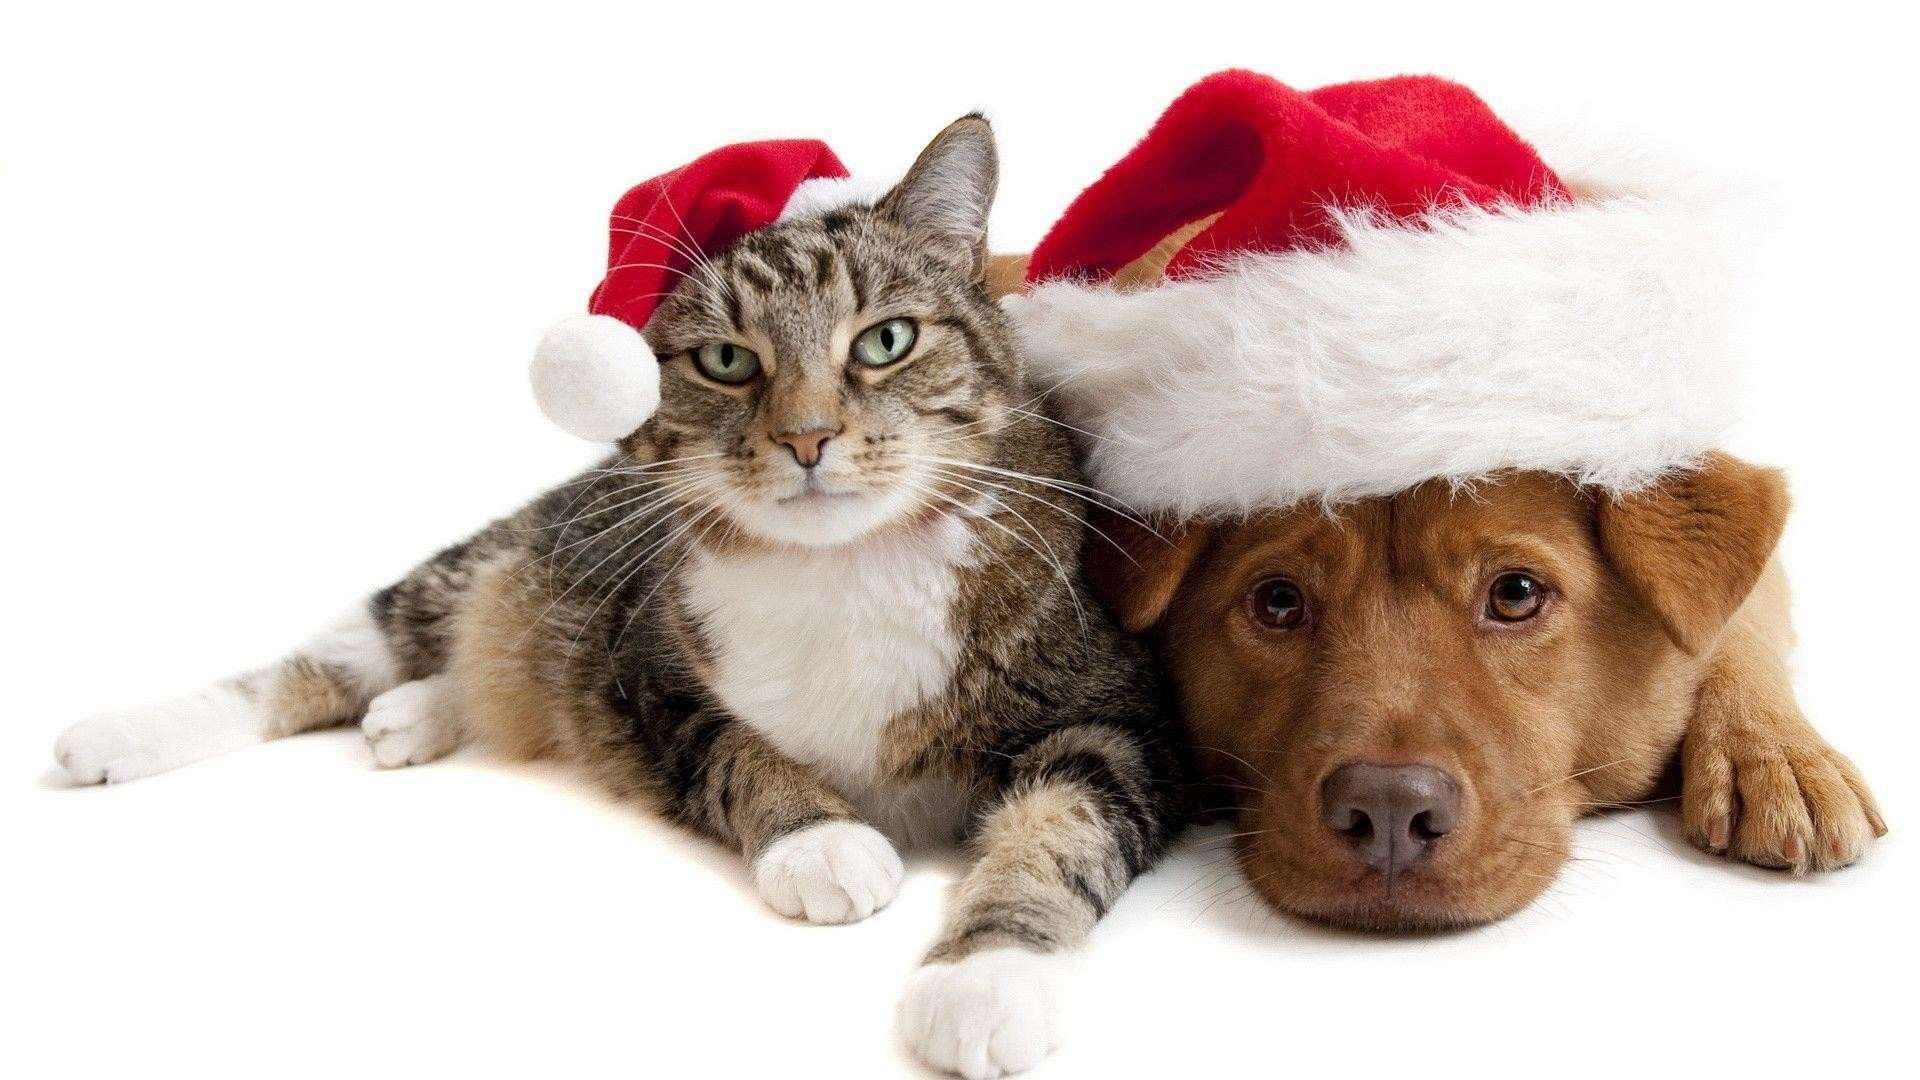 1920x1080 Cute Kittens and Dogs Christmas HD Wallpaper For Desktop .